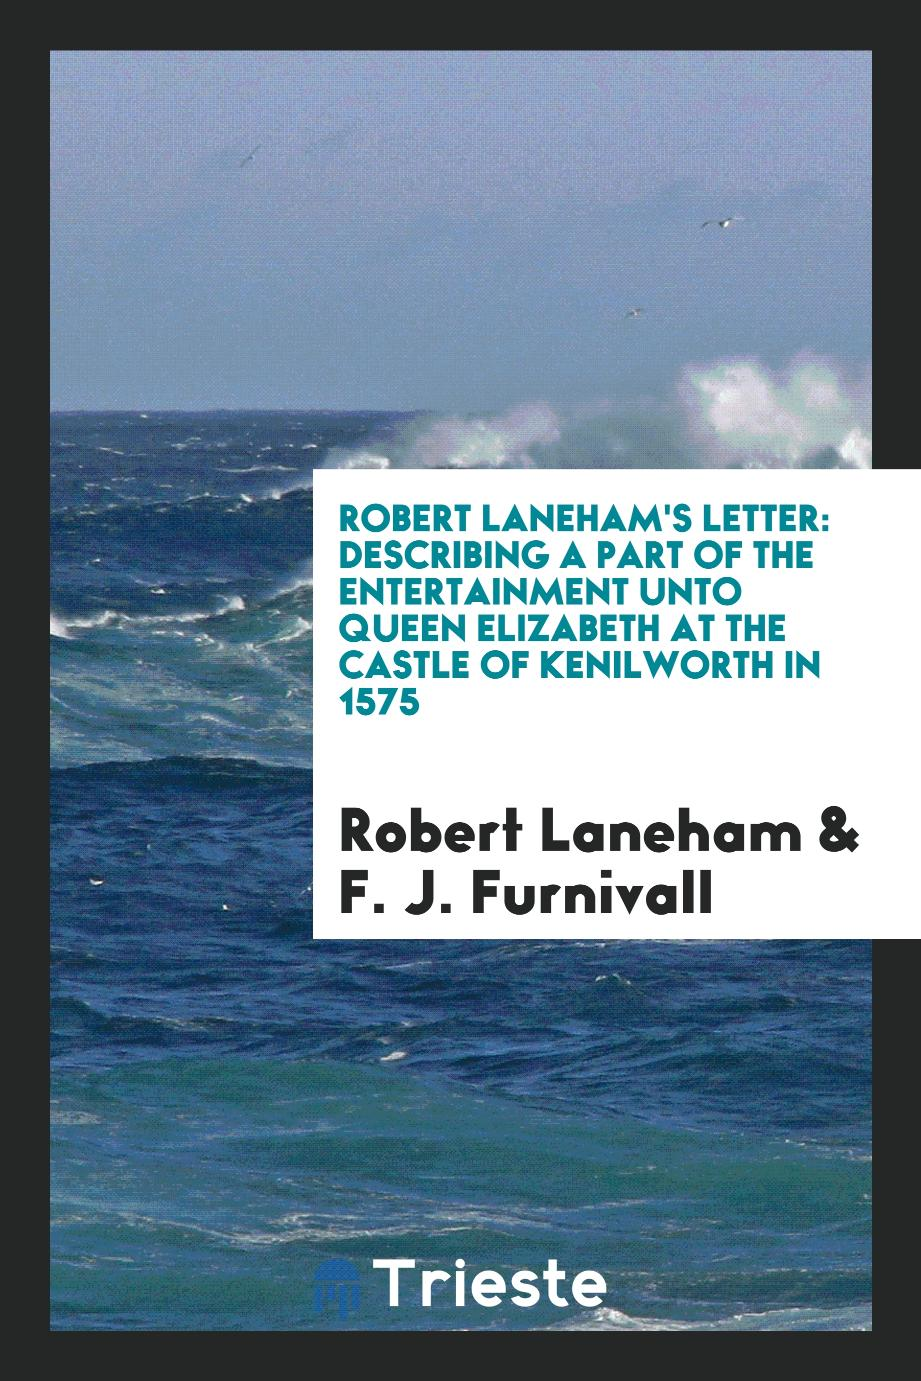 Robert Laneham's Letter: Describing a Part of the Entertainment unto Queen Elizabeth at the Castle of Kenilworth in 1575